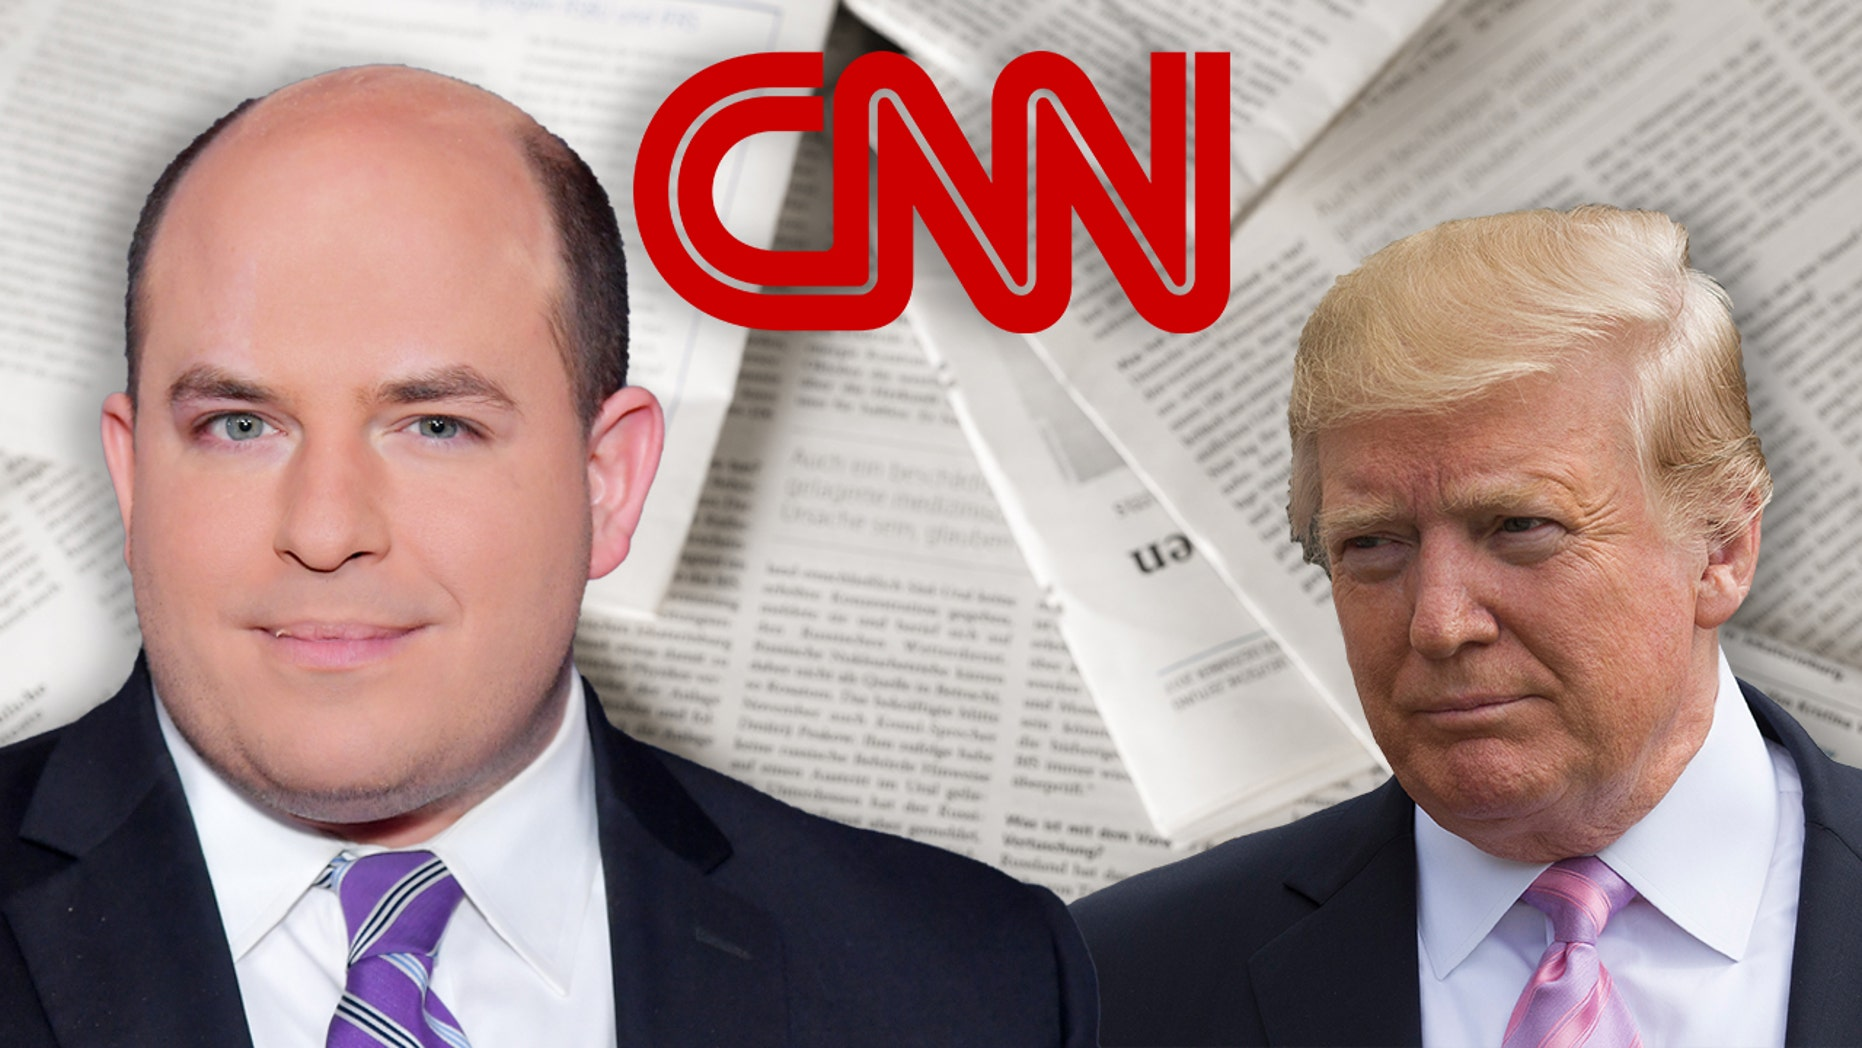 CNN pundit Brian Stelter pondered aloud if news organizations want Trump impeached for business purposes.